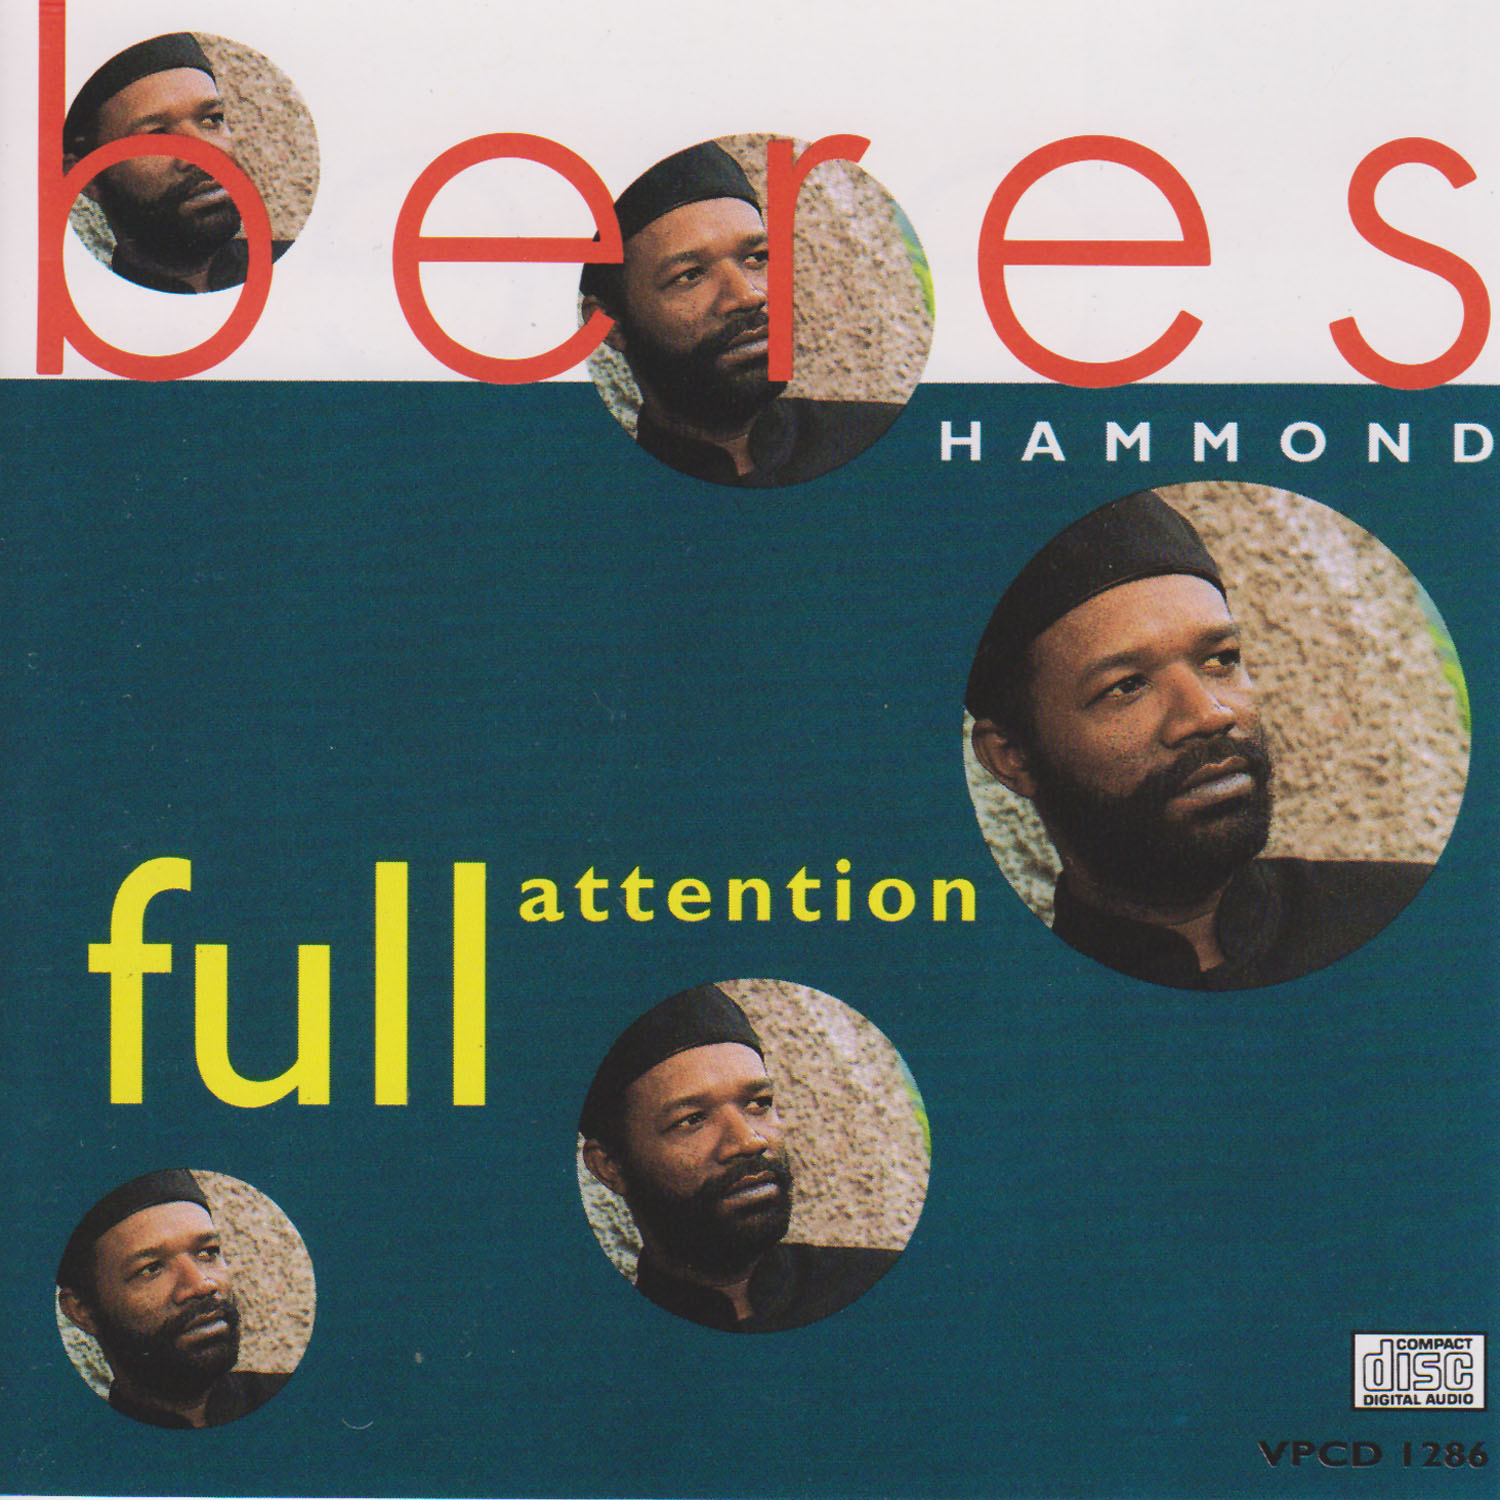 Beres Hammond – Full Attention